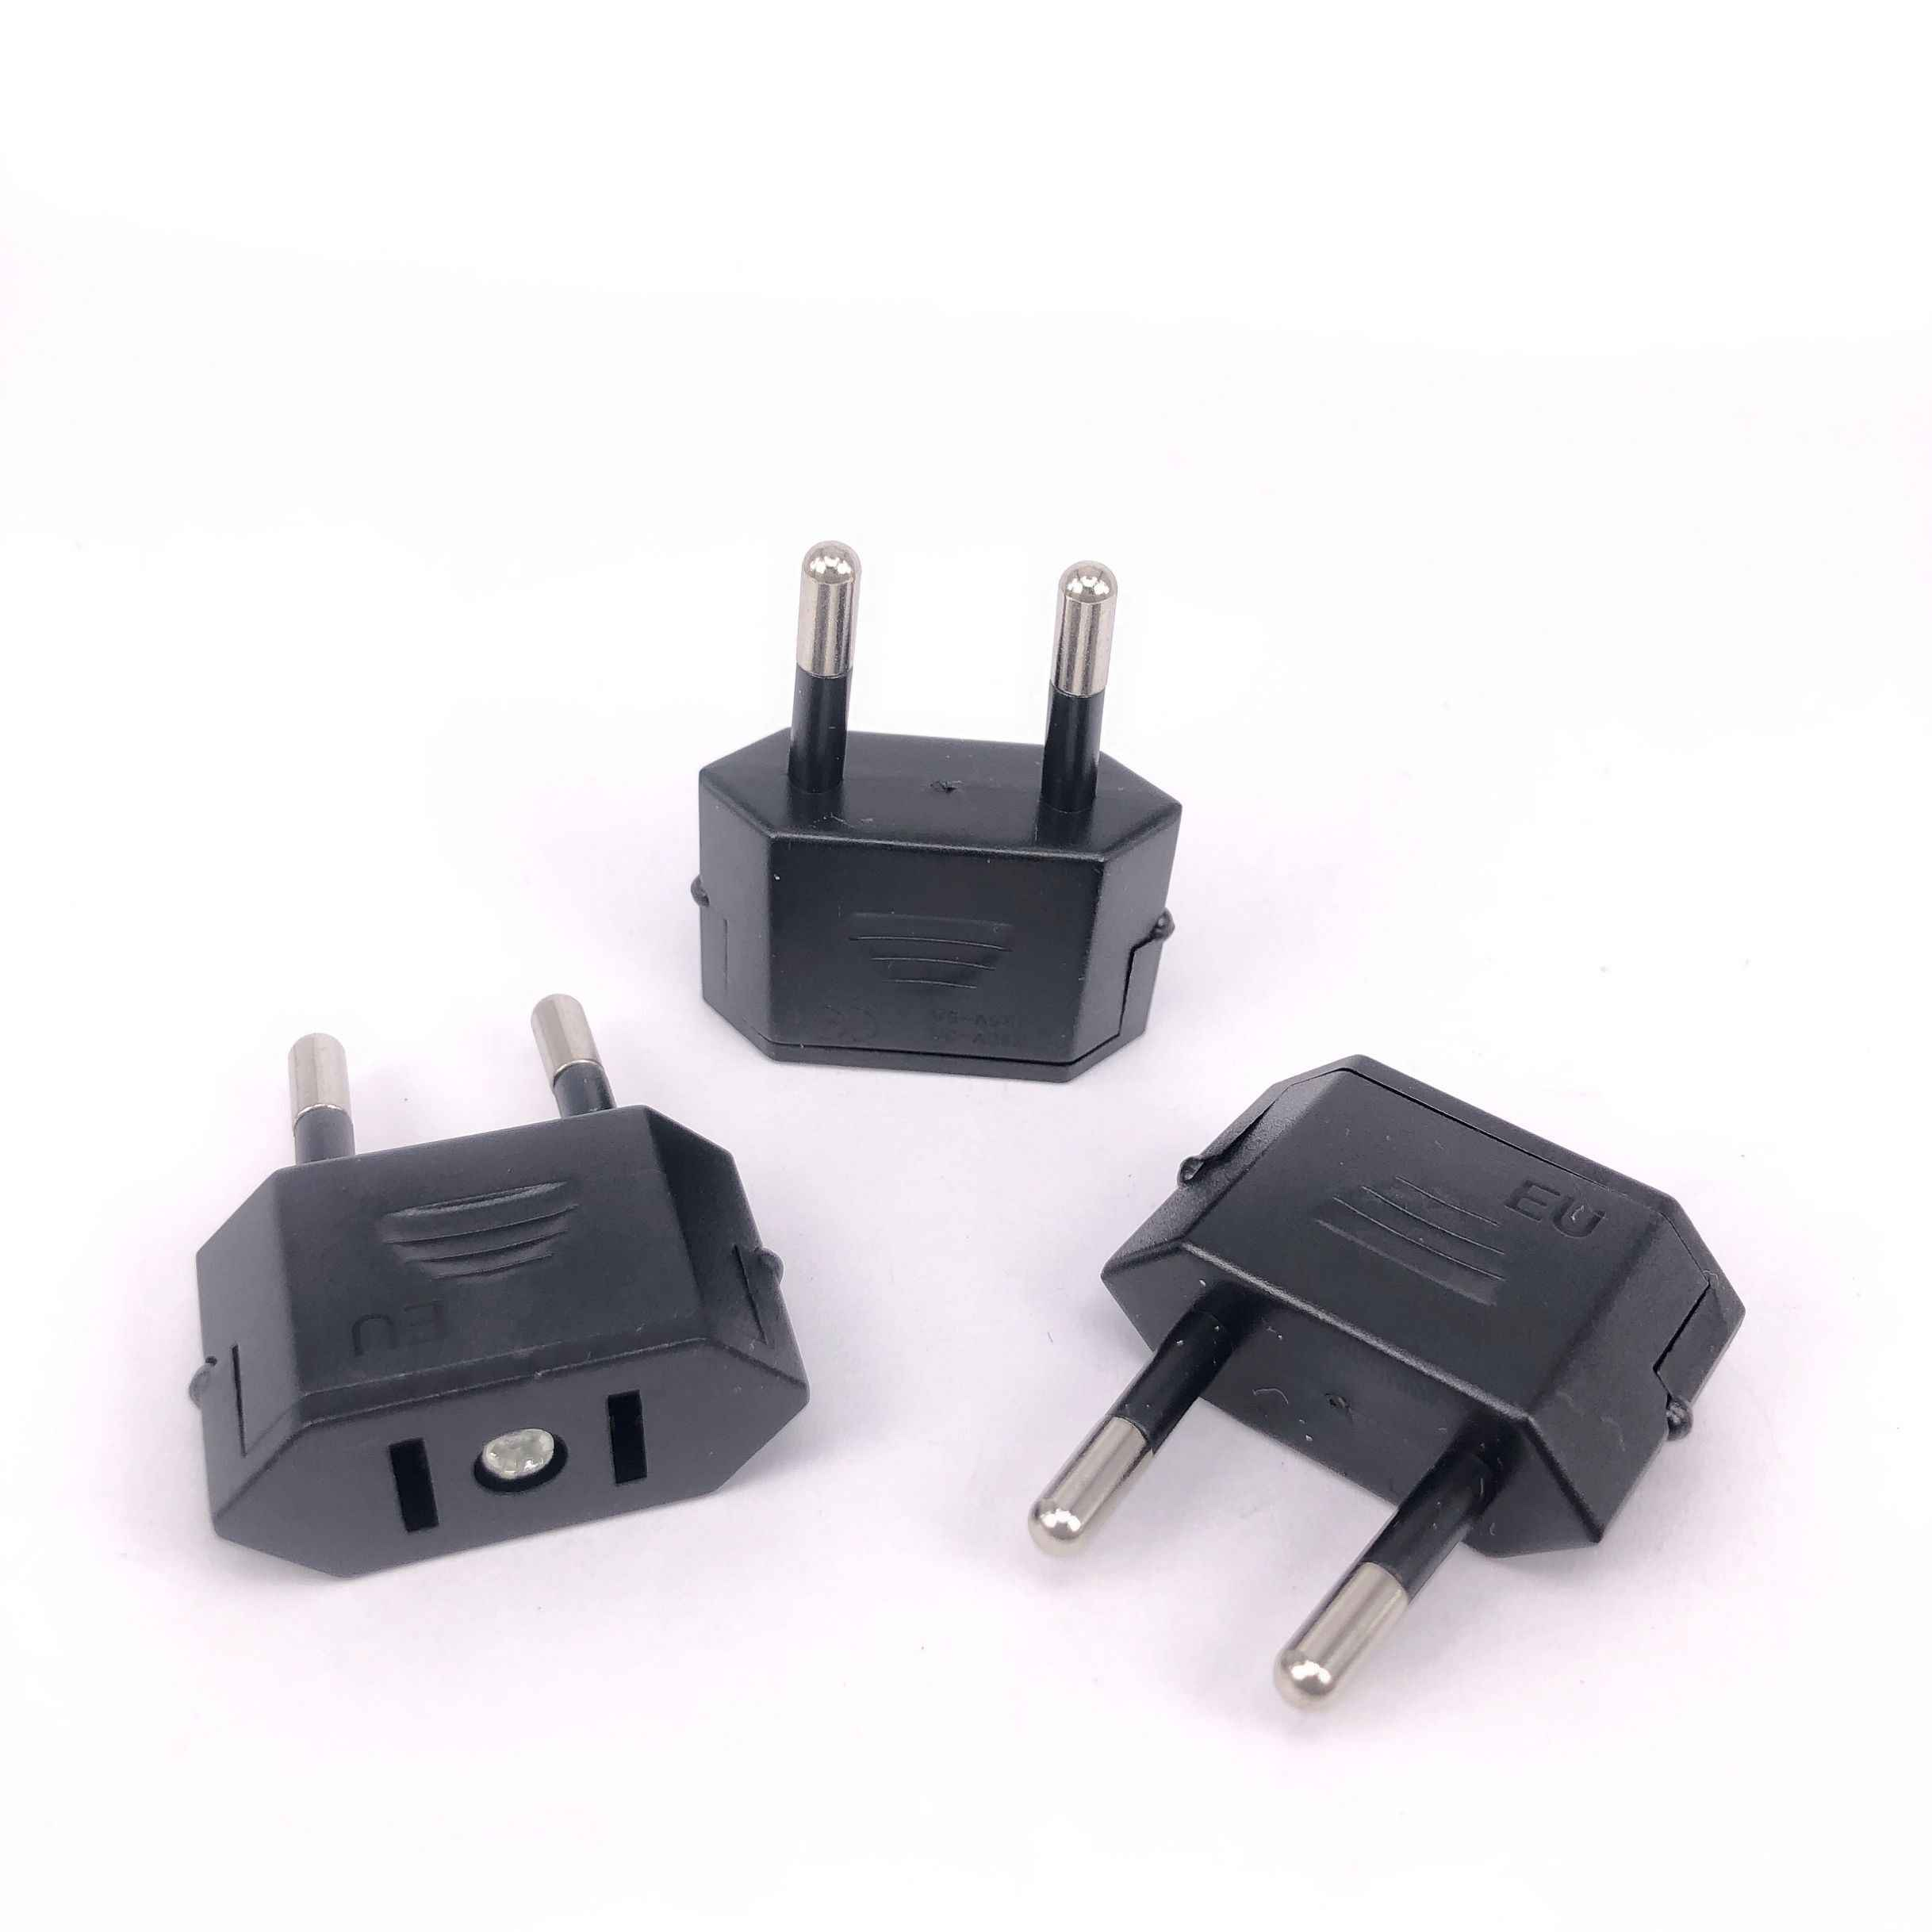 Eu Travel Power Adapter Converter Amerikaanse China Ons Eu Euro Europese Type C Plug Adapter Ac Elektrische 2 Ronde socket Outlet